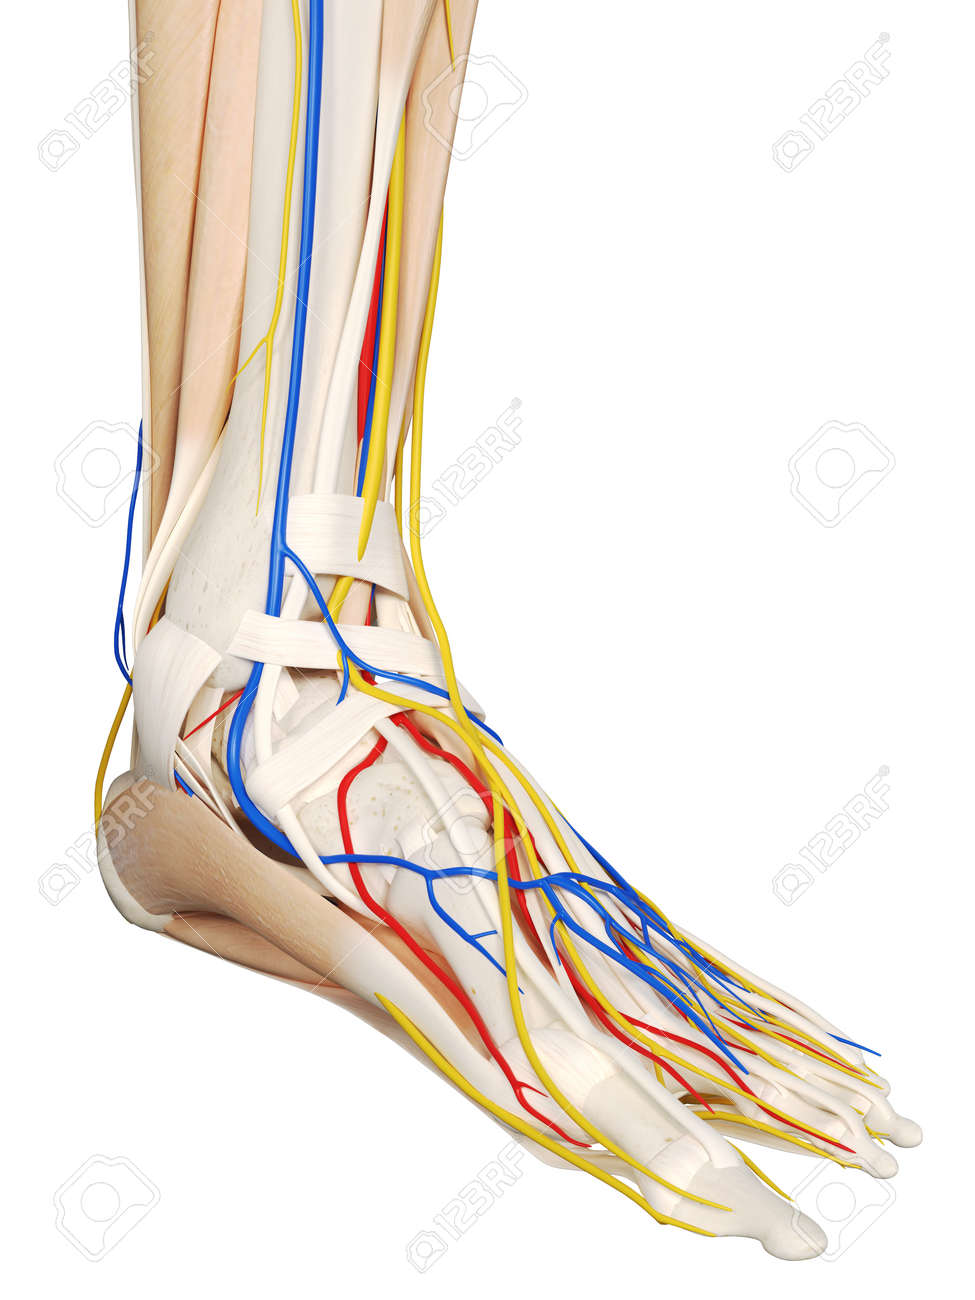 3d Rendered Medically Accurate Illustration Of The Foot Anatomy ...